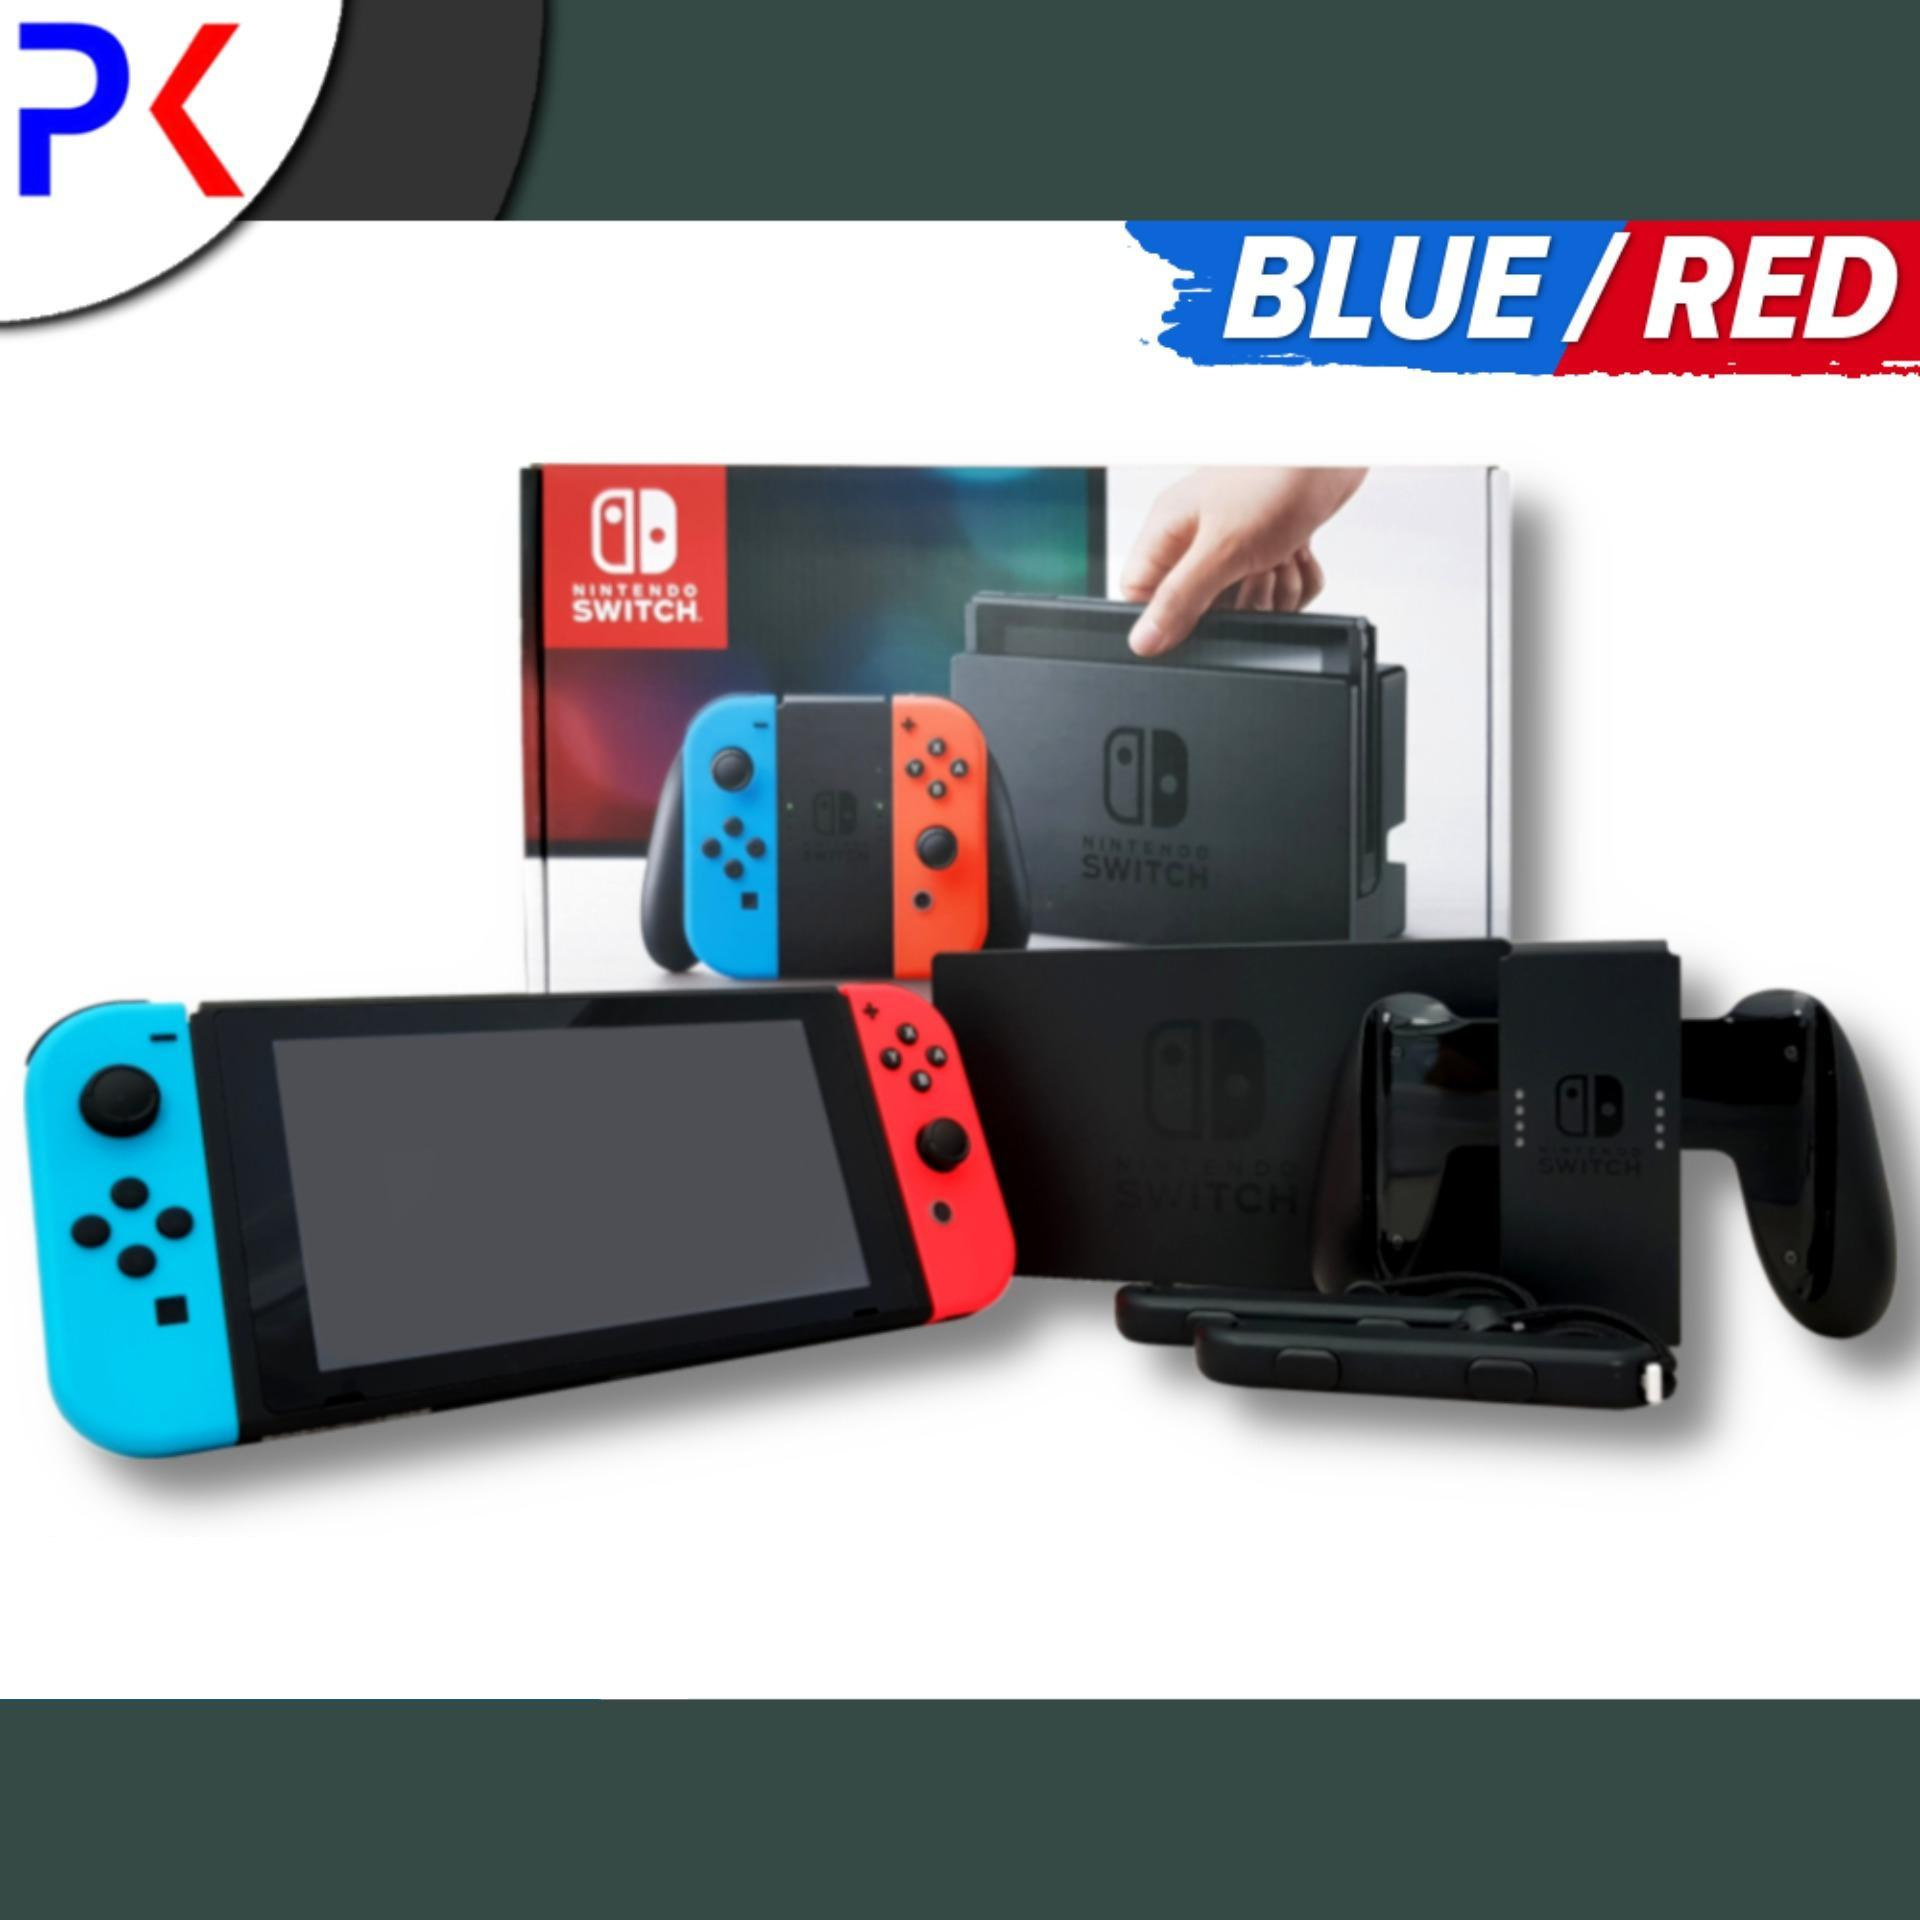 Nintendo Switch Console With Neon Blue/red Joy-Con By Peppkouri.